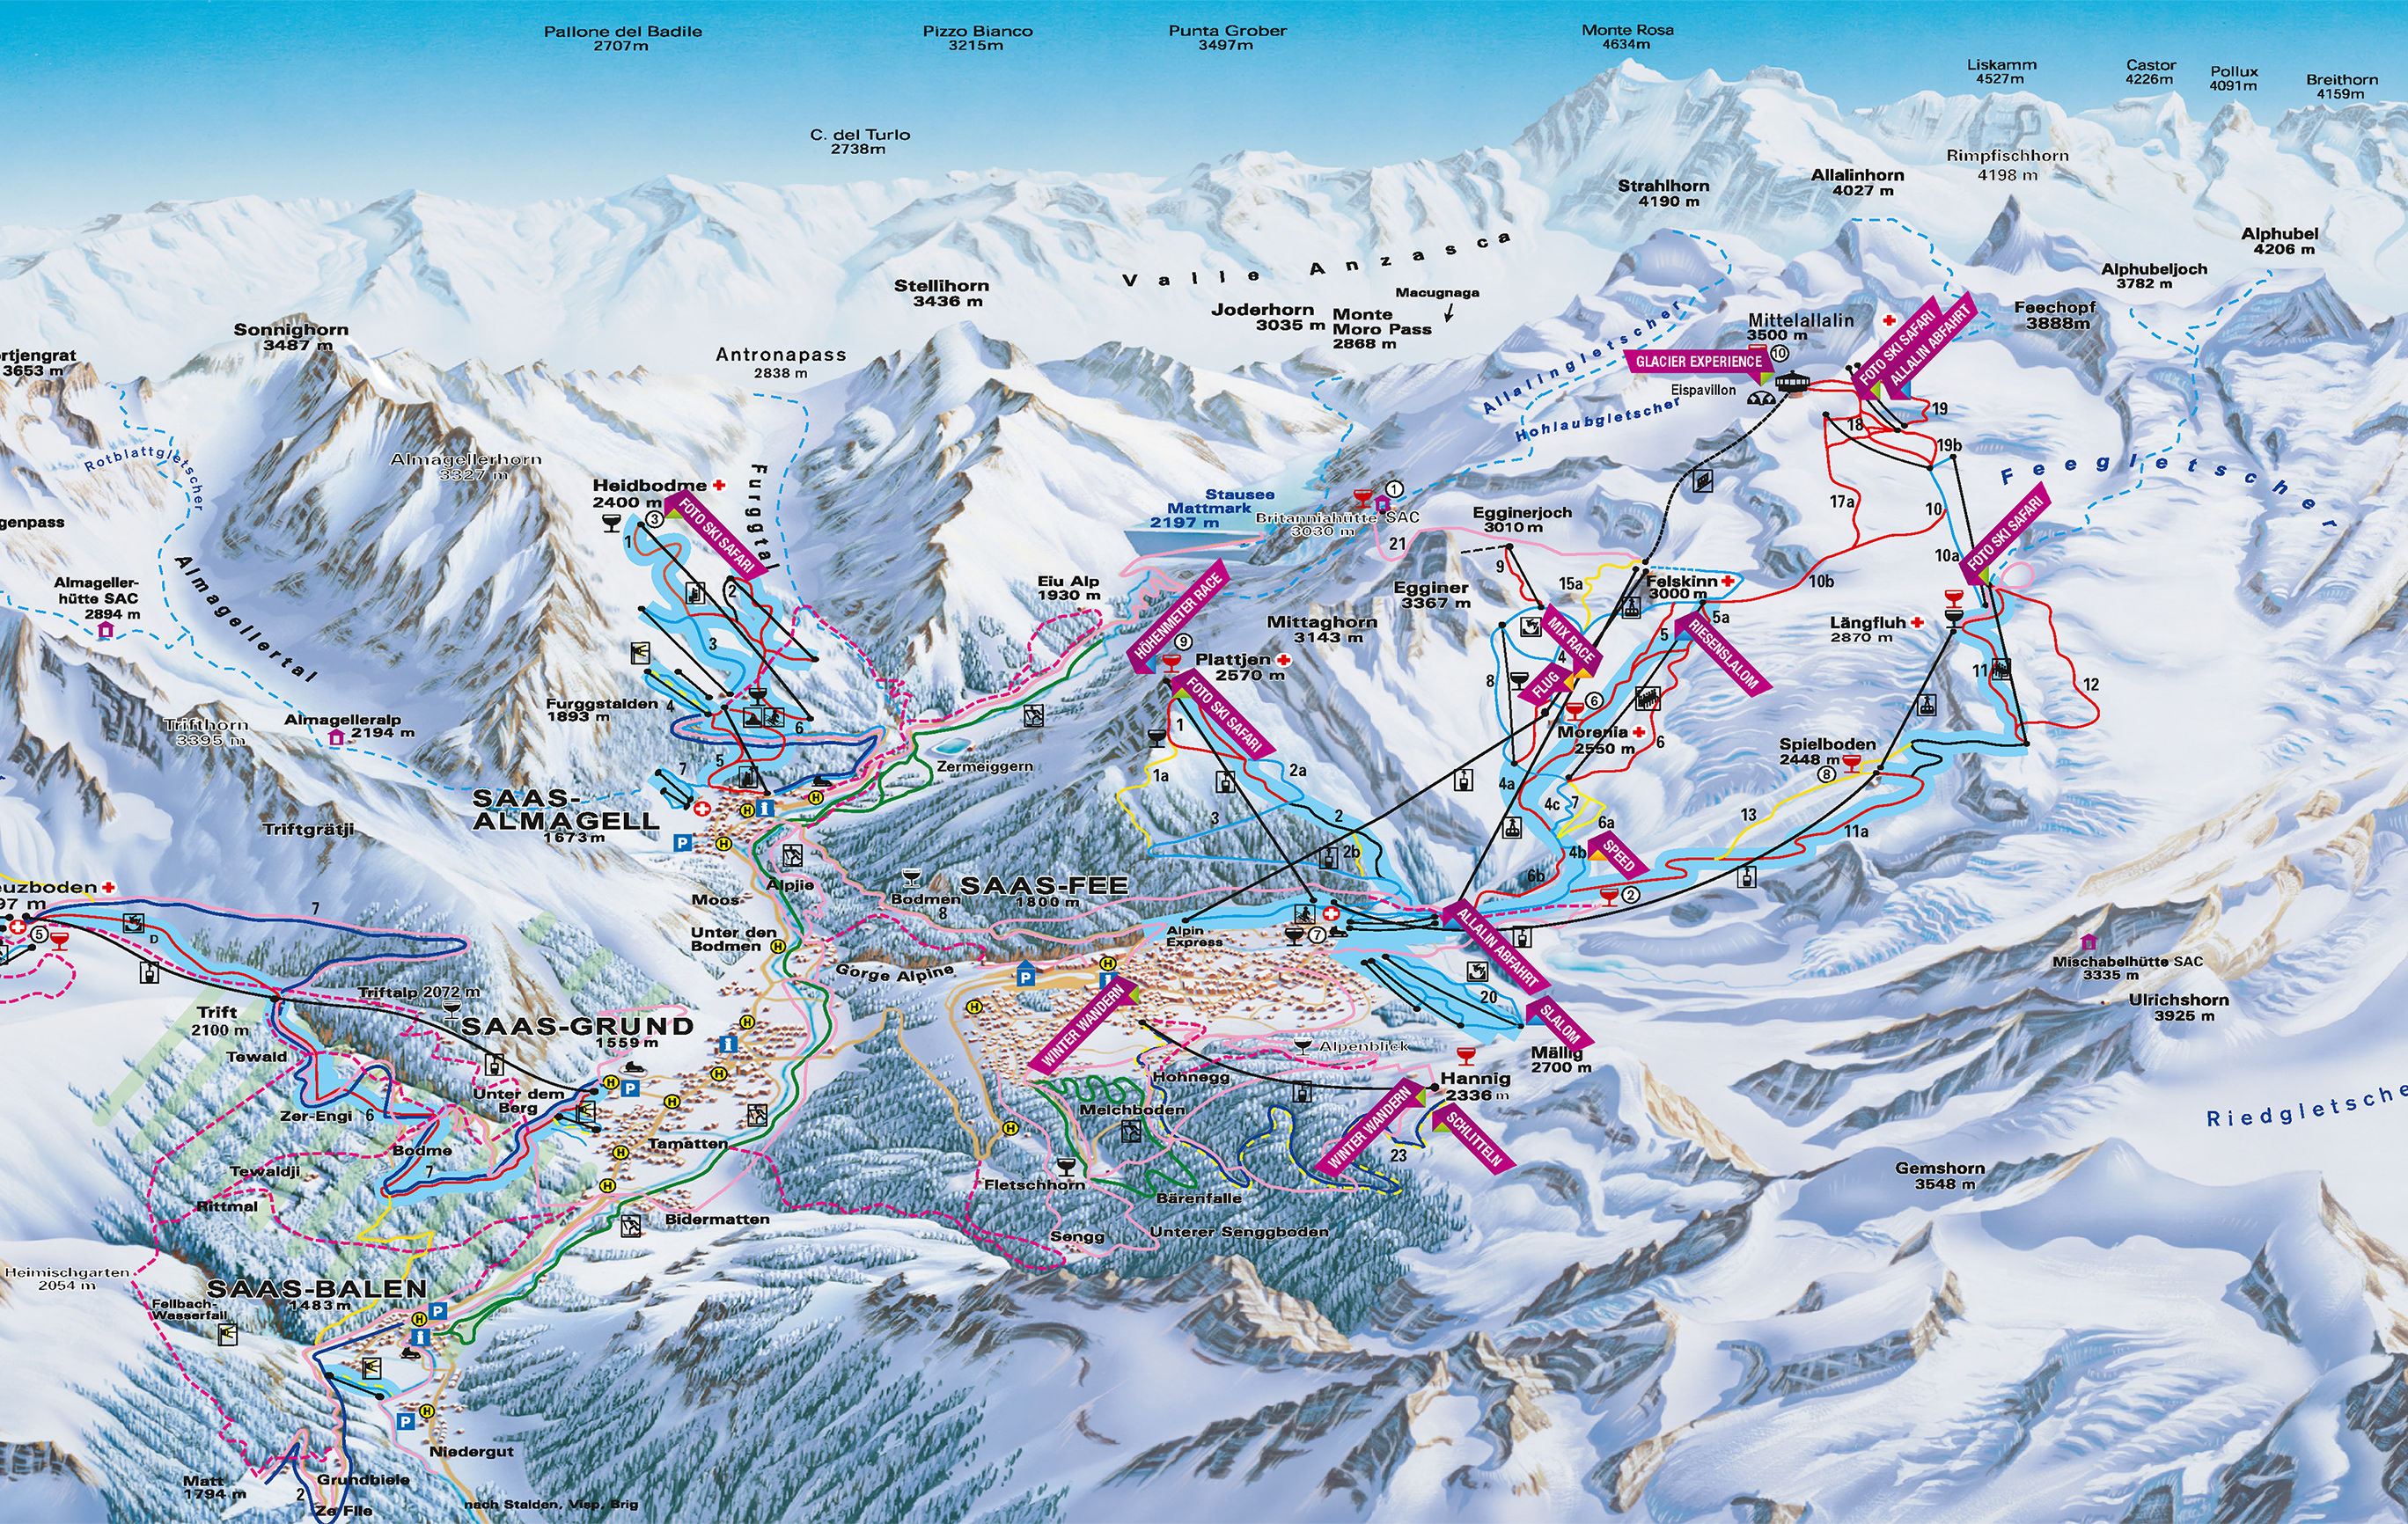 Open lifts / Piste map